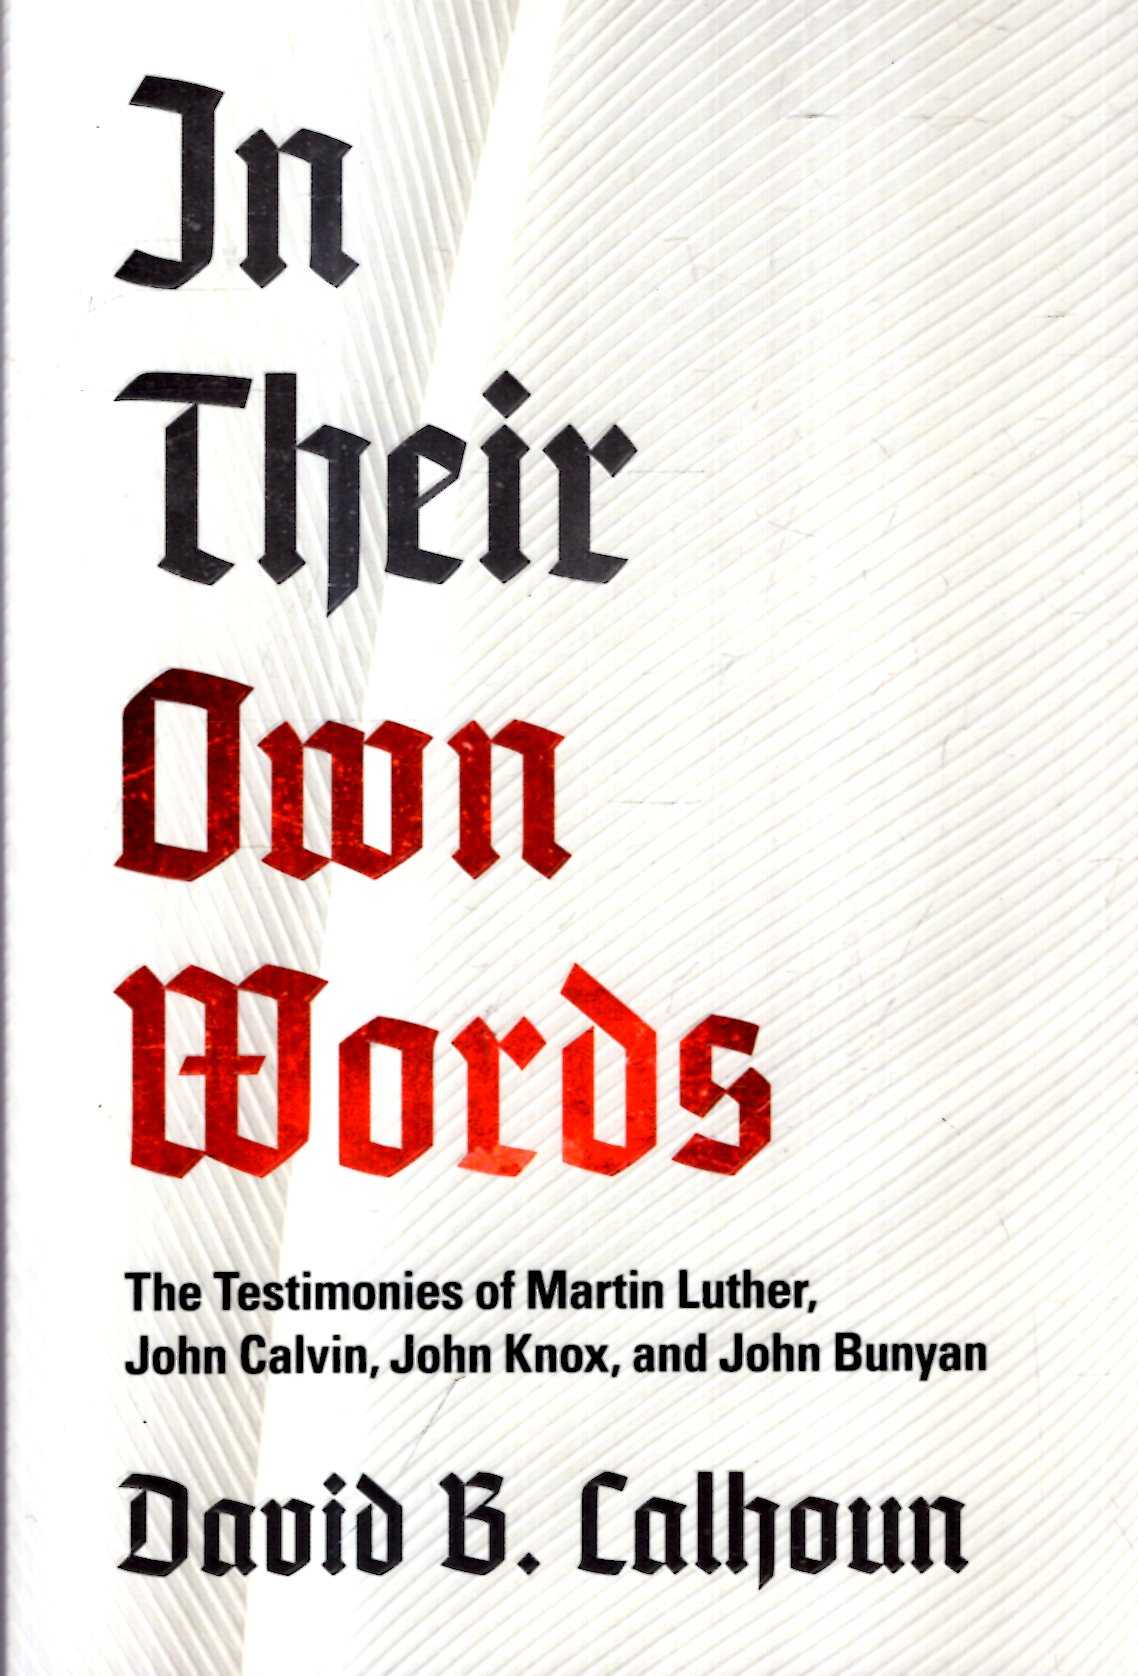 Image for In Their Own Words: The Testimonies of Martin Luther, John Calvin, John Knox, and John Bunyan